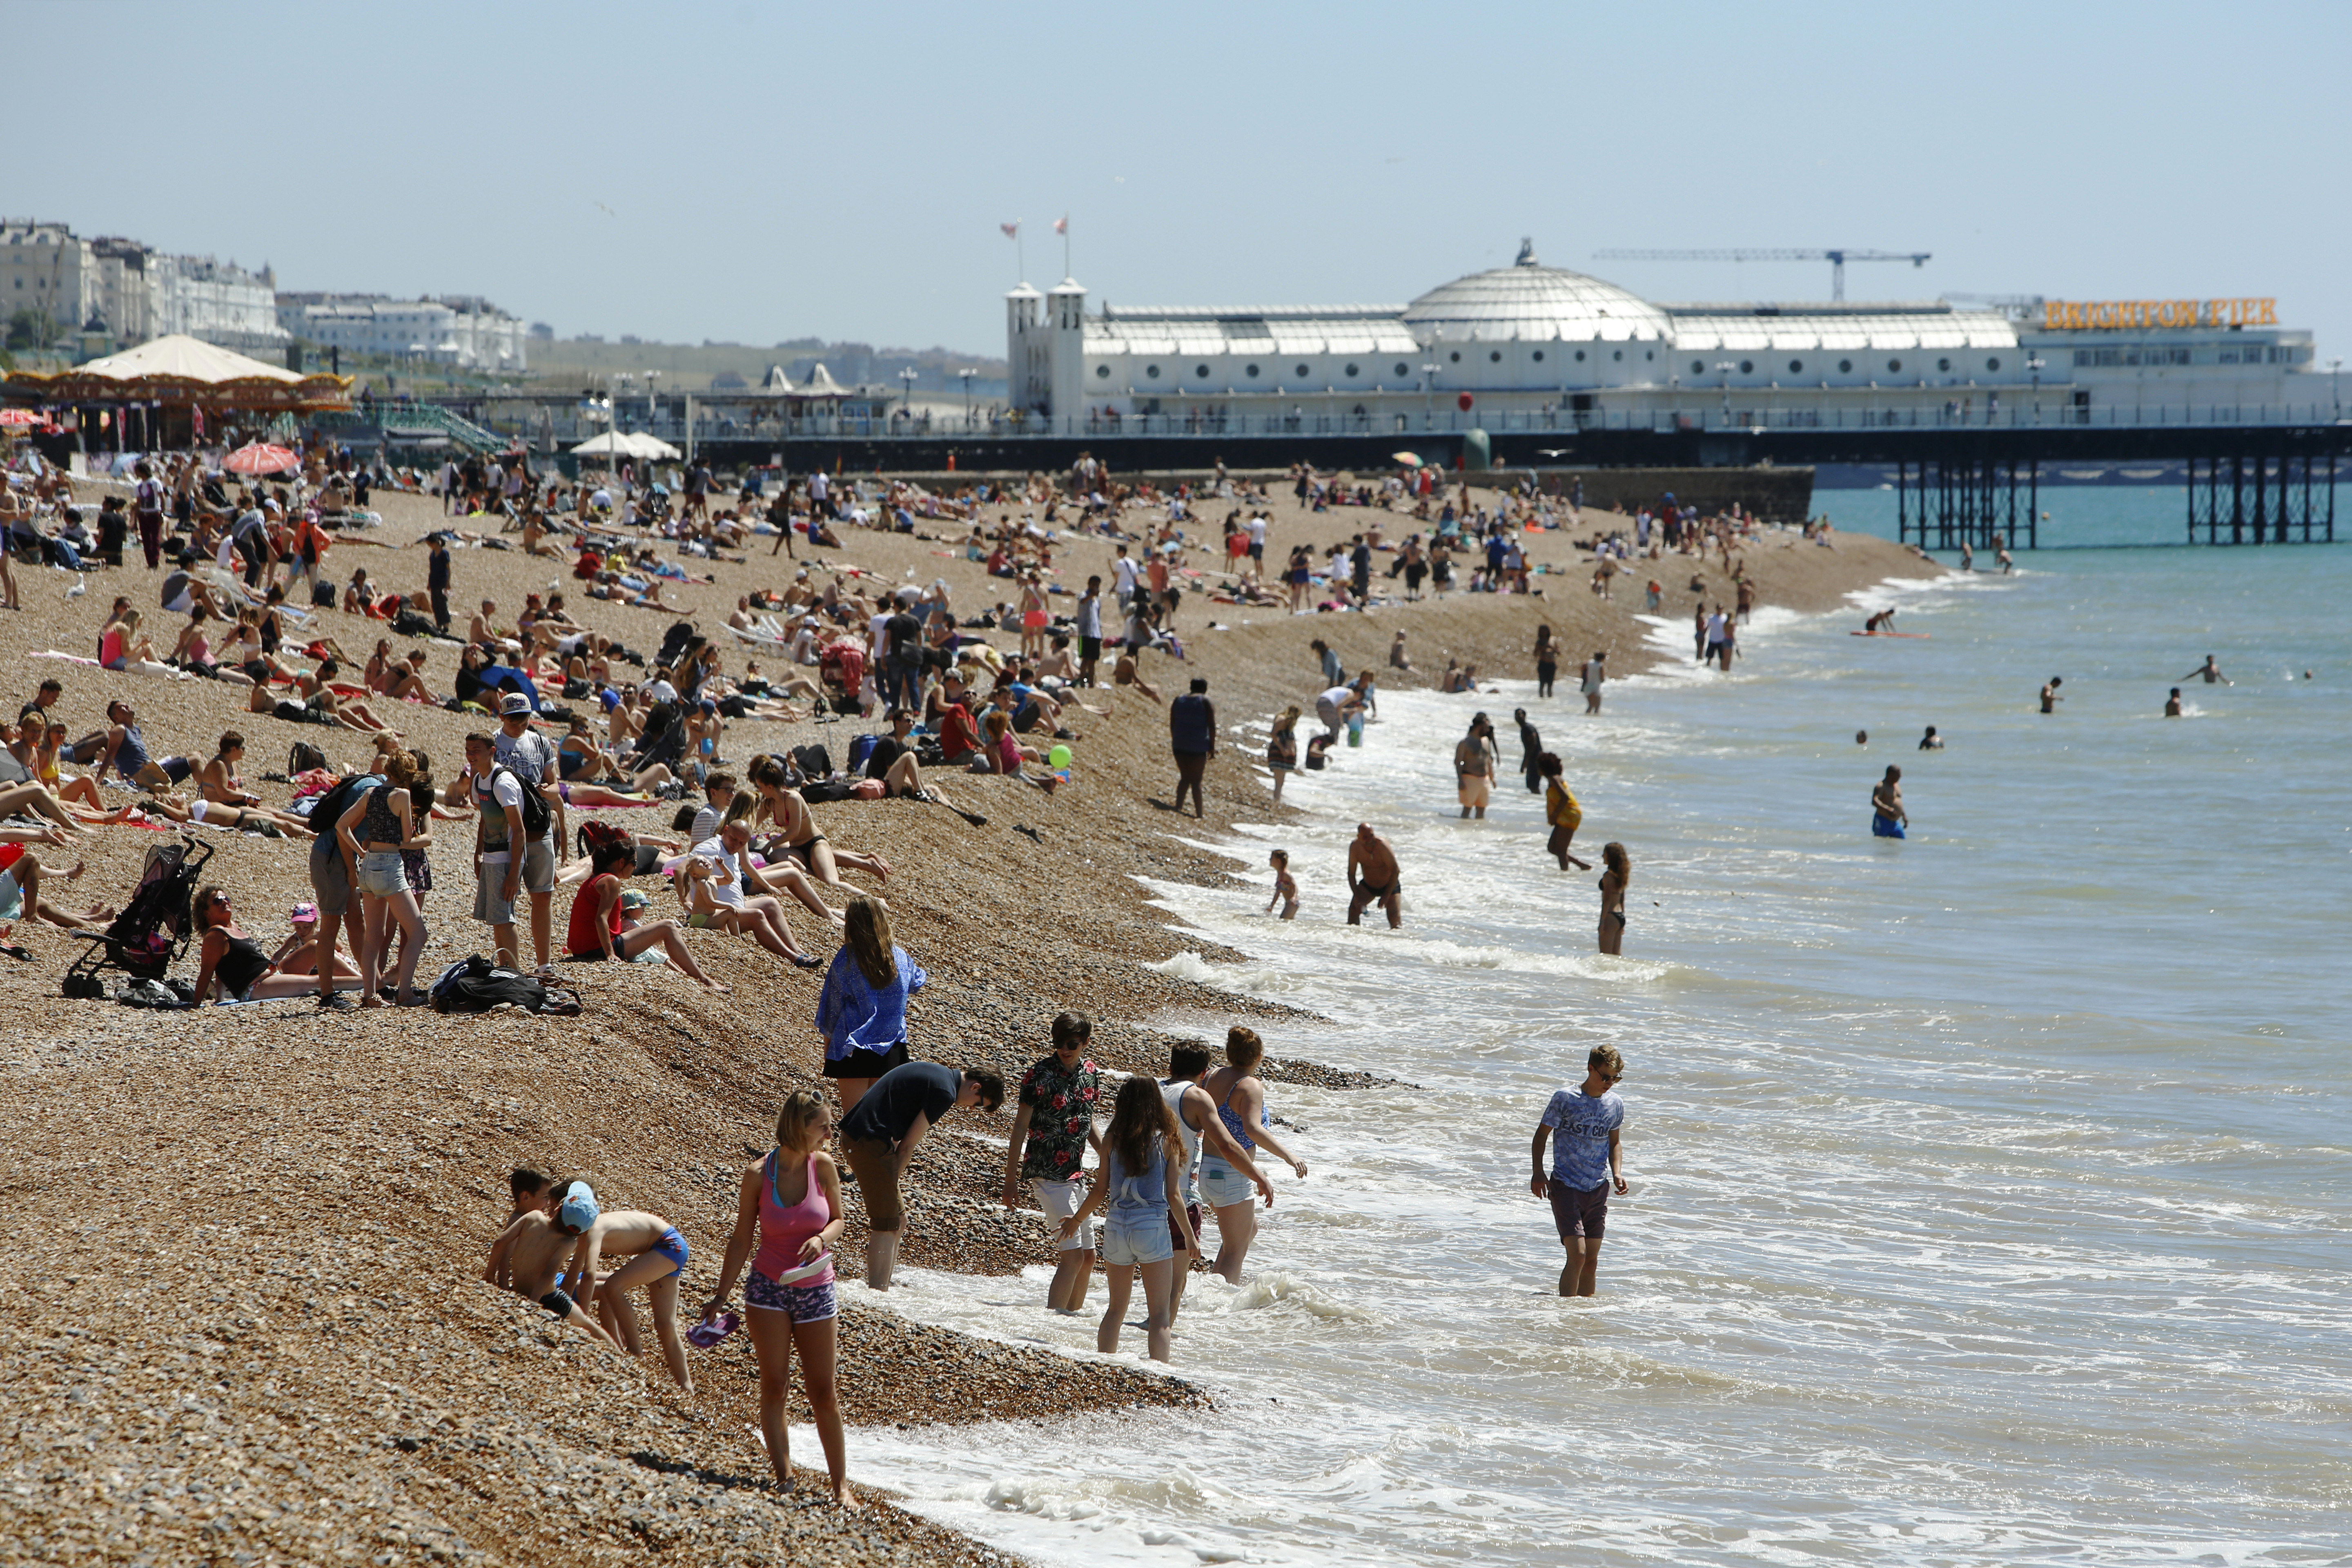 Sunbathers and swimmers enjoy a hot Summer day at Brighton beach in Britain June 30, 2015. Britain's Meteorological Office has warned of the possibility of heatwave conditions, with temperatures reaching their highest of the year on Tuesday and Wednesday.    REUTERS/Luke Macgregor   - LR2EB6U0ZPAD0